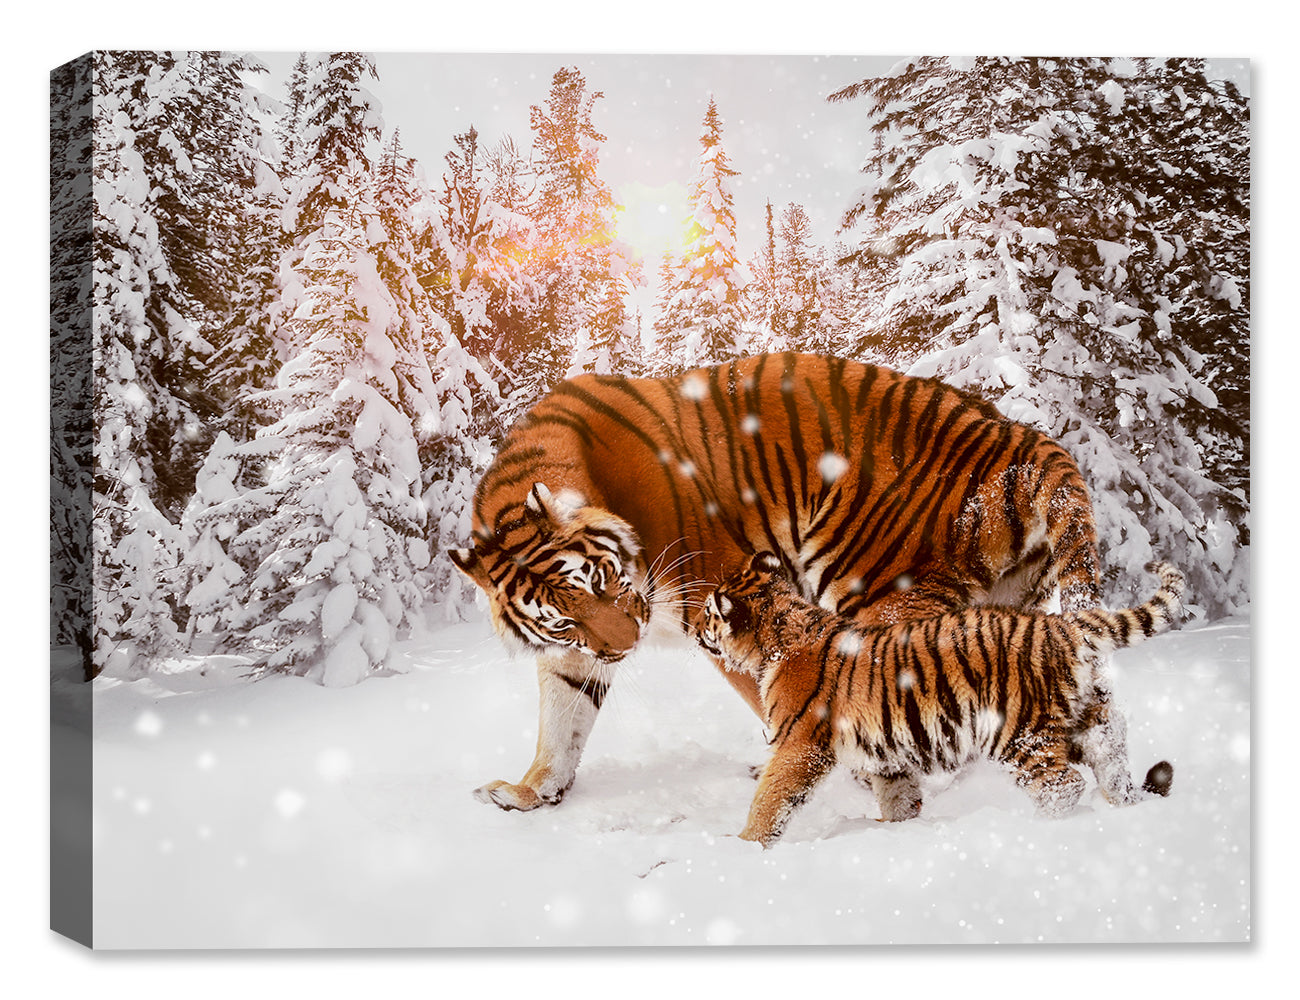 Tiger & Cub in the Snow